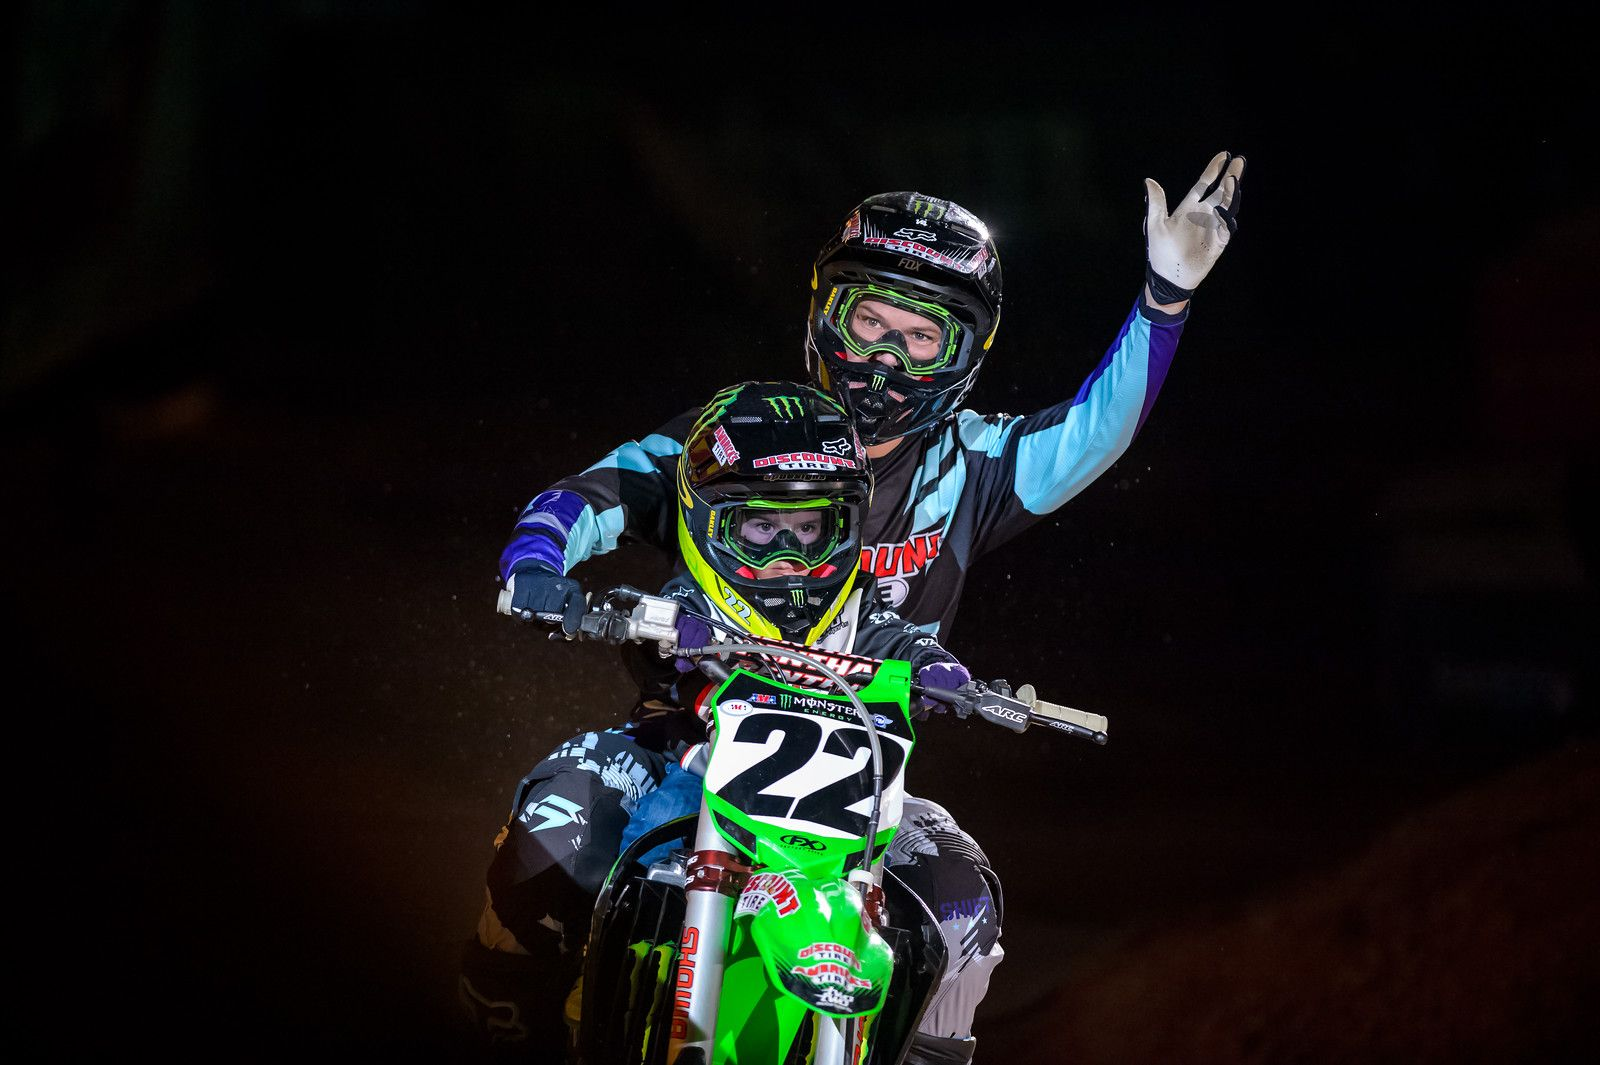 Chad reed and his son - ATL1